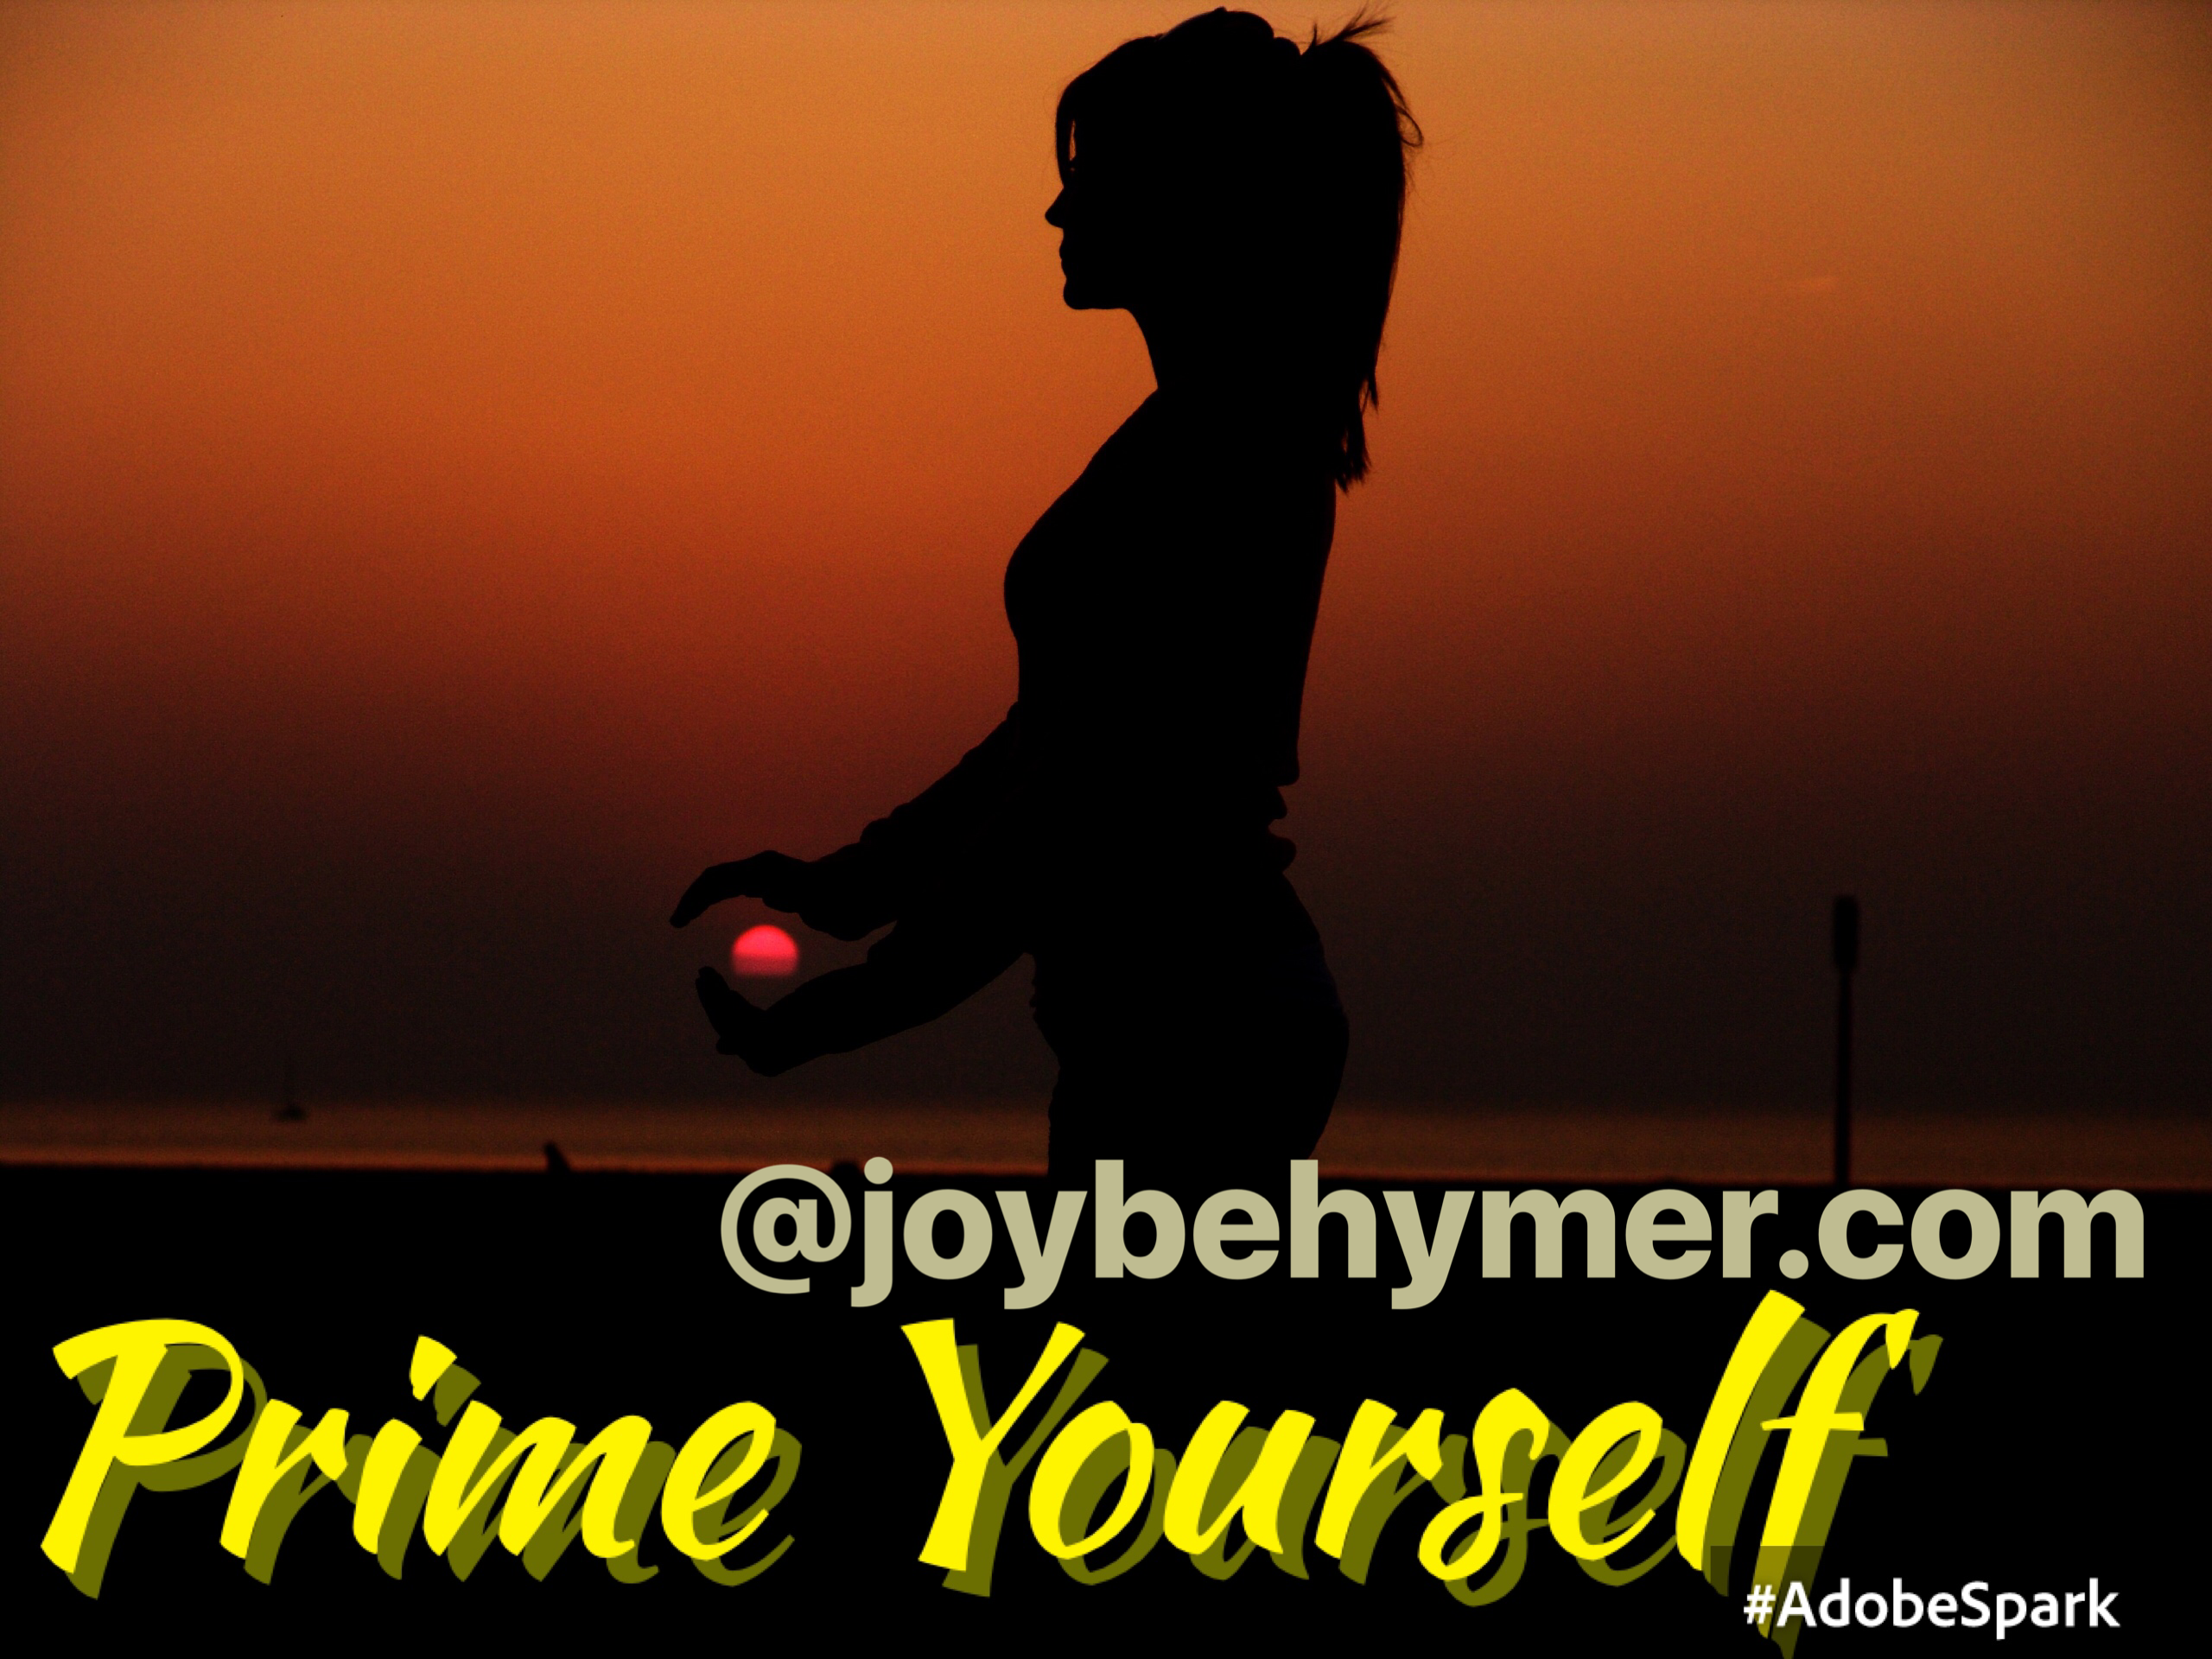 Prime yourself